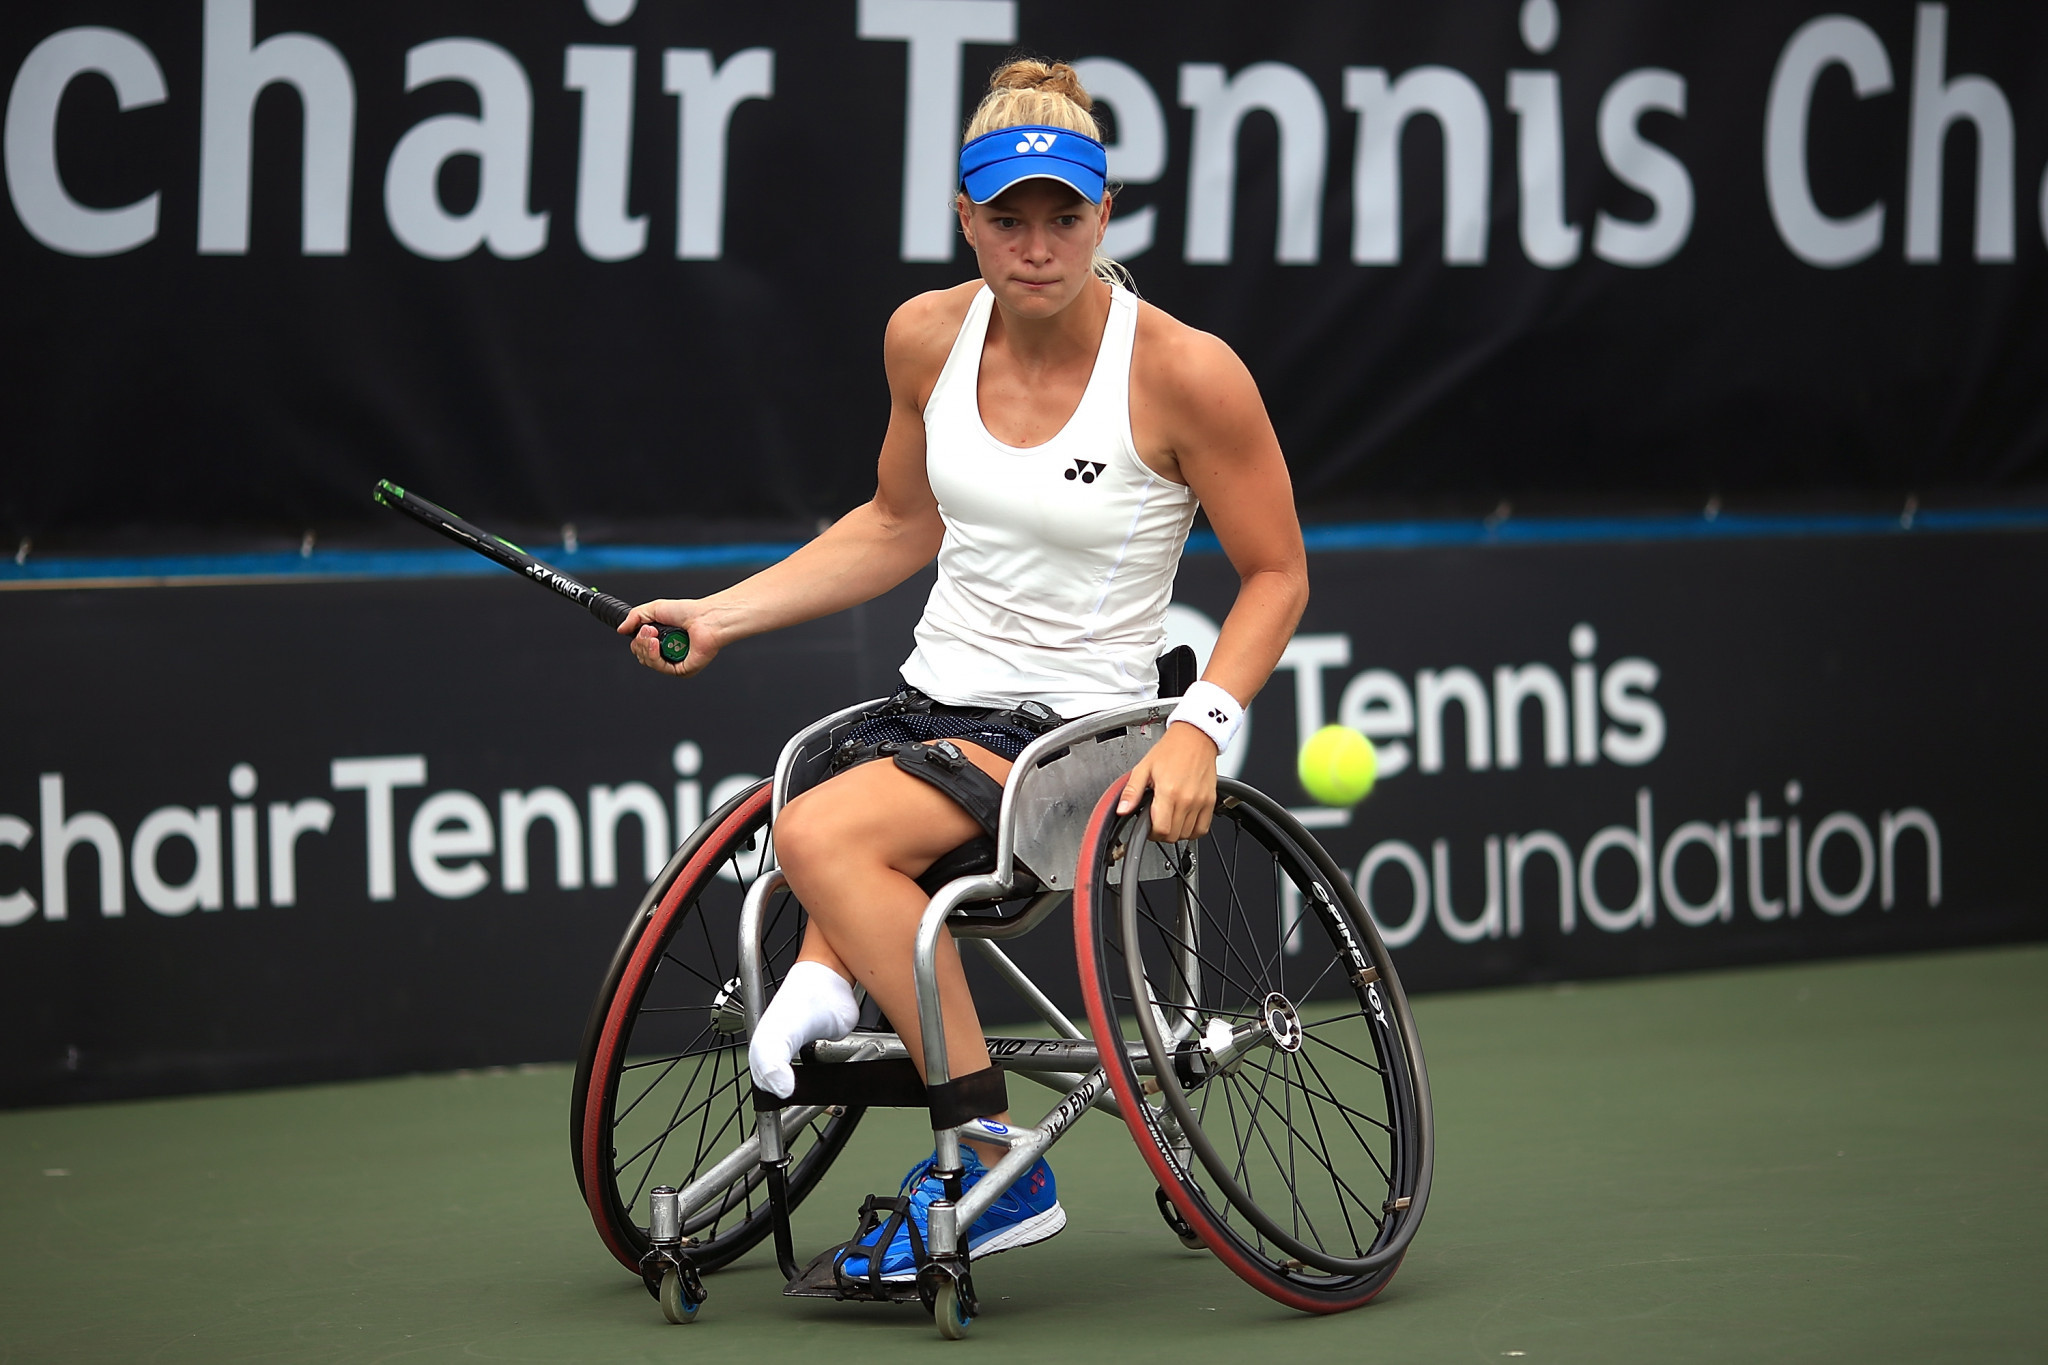 Dutch player Diede de Groot secured the women's singles title ©Getty Images